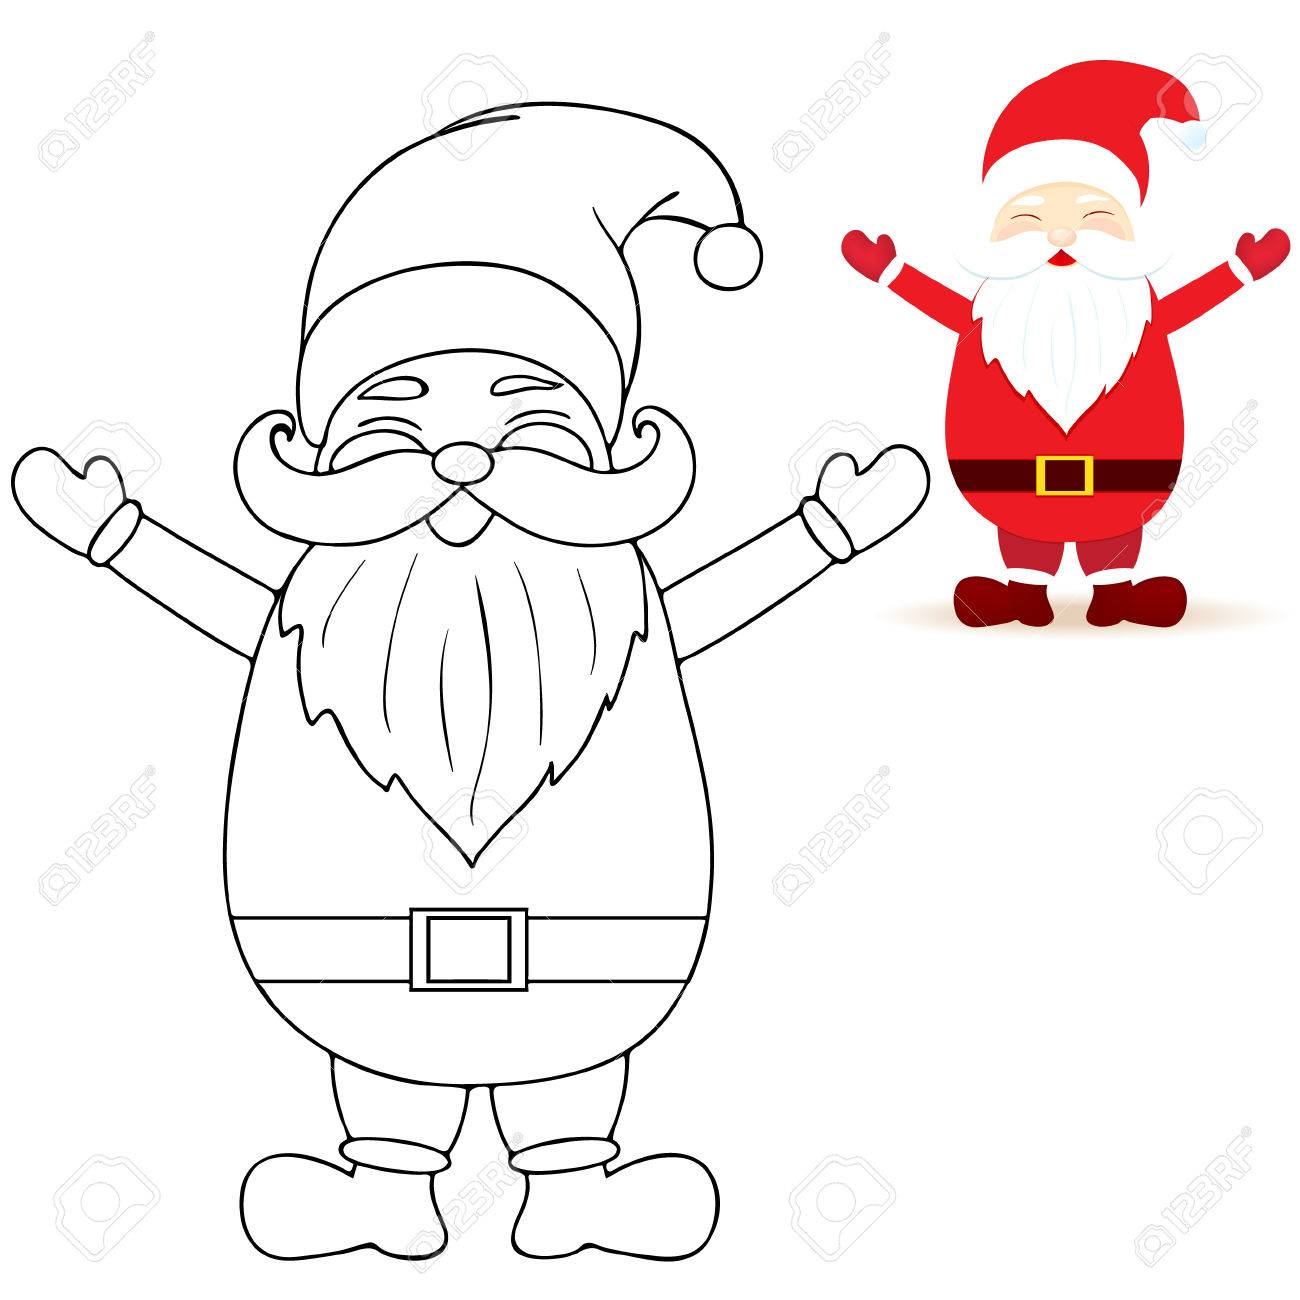 Santa Claus Coloring Pages Royalty Free Cliparts, Vectors, And Stock ...